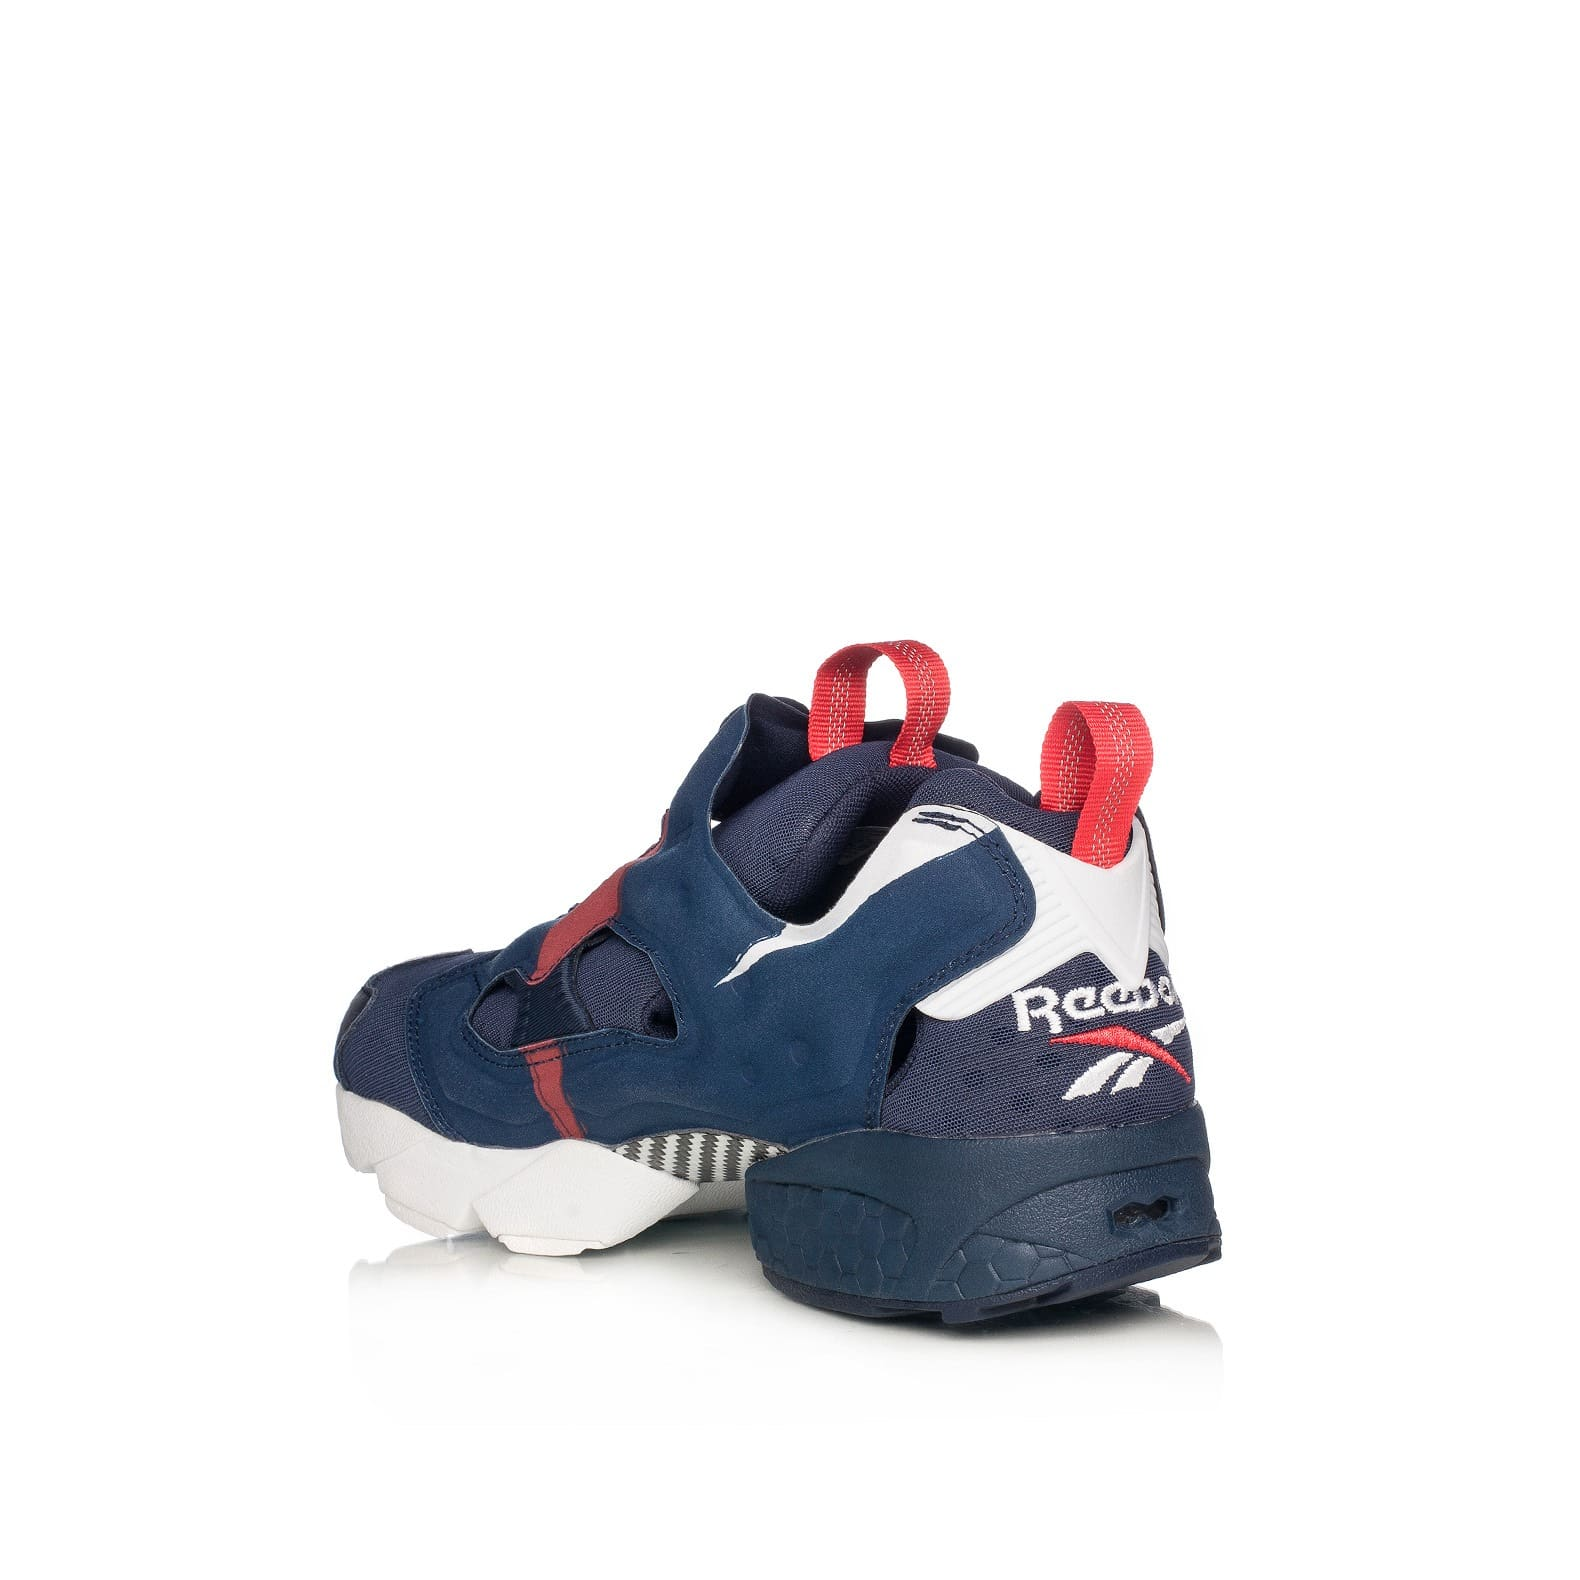 Reebok-INSTAPUMP-FURY-OB-COLLEGE-NAVY-EXCELLENT-RED-WHITE-ar3197